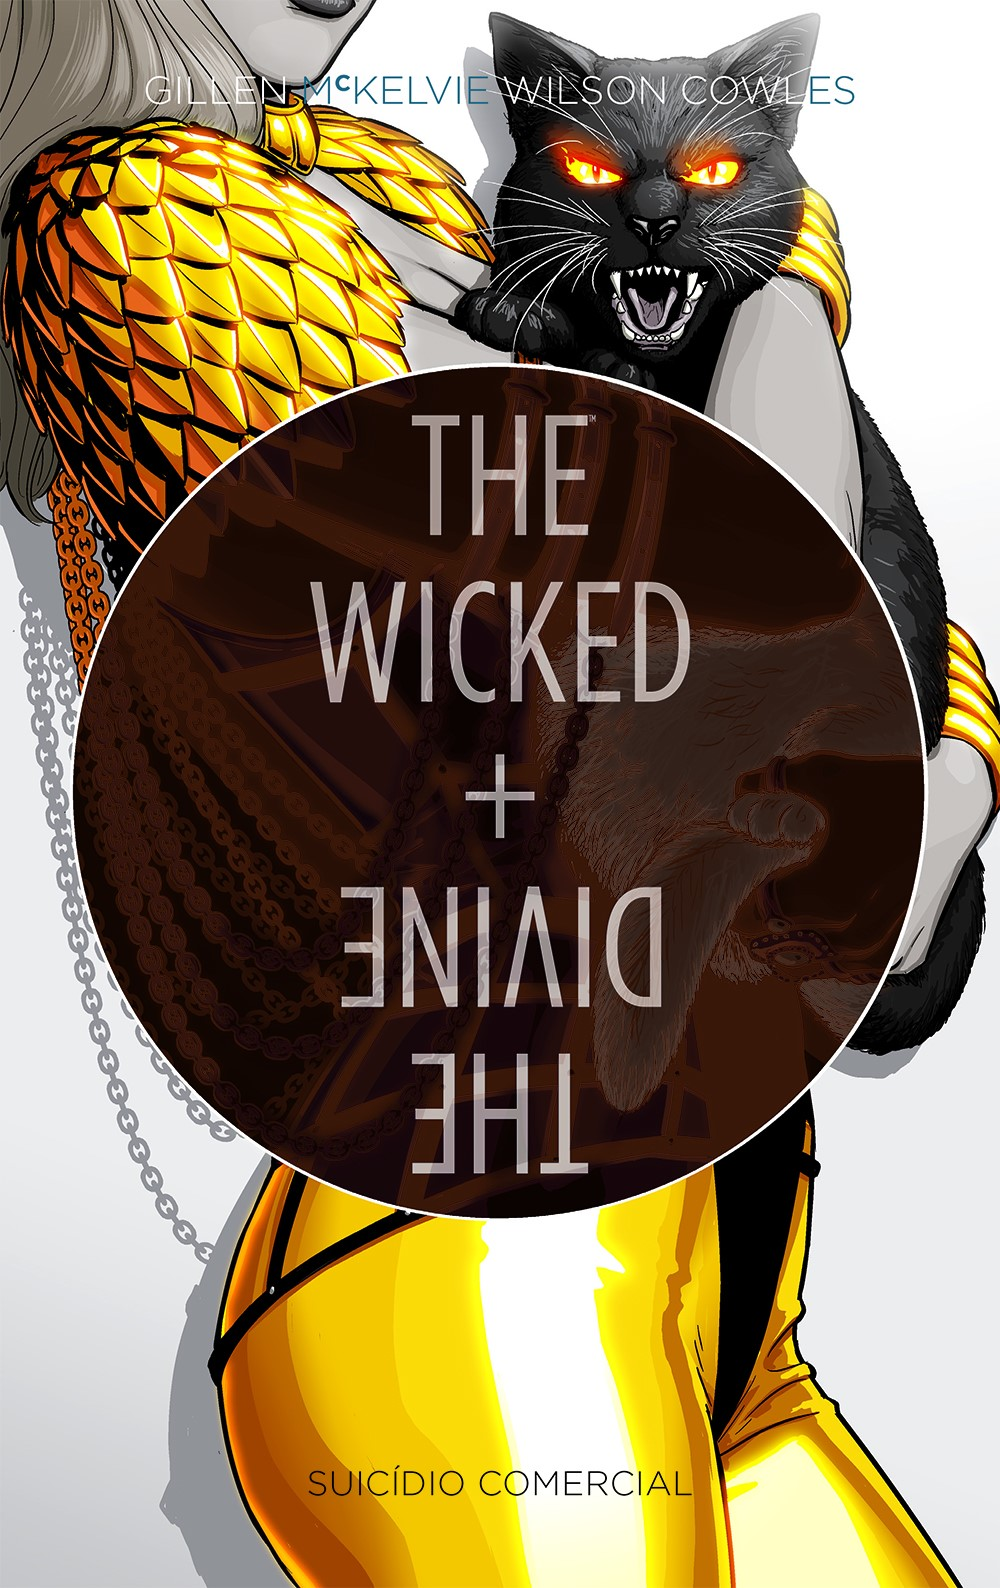 THE WICKED + THE DIVINE vol. 3: Suicídio Comercial